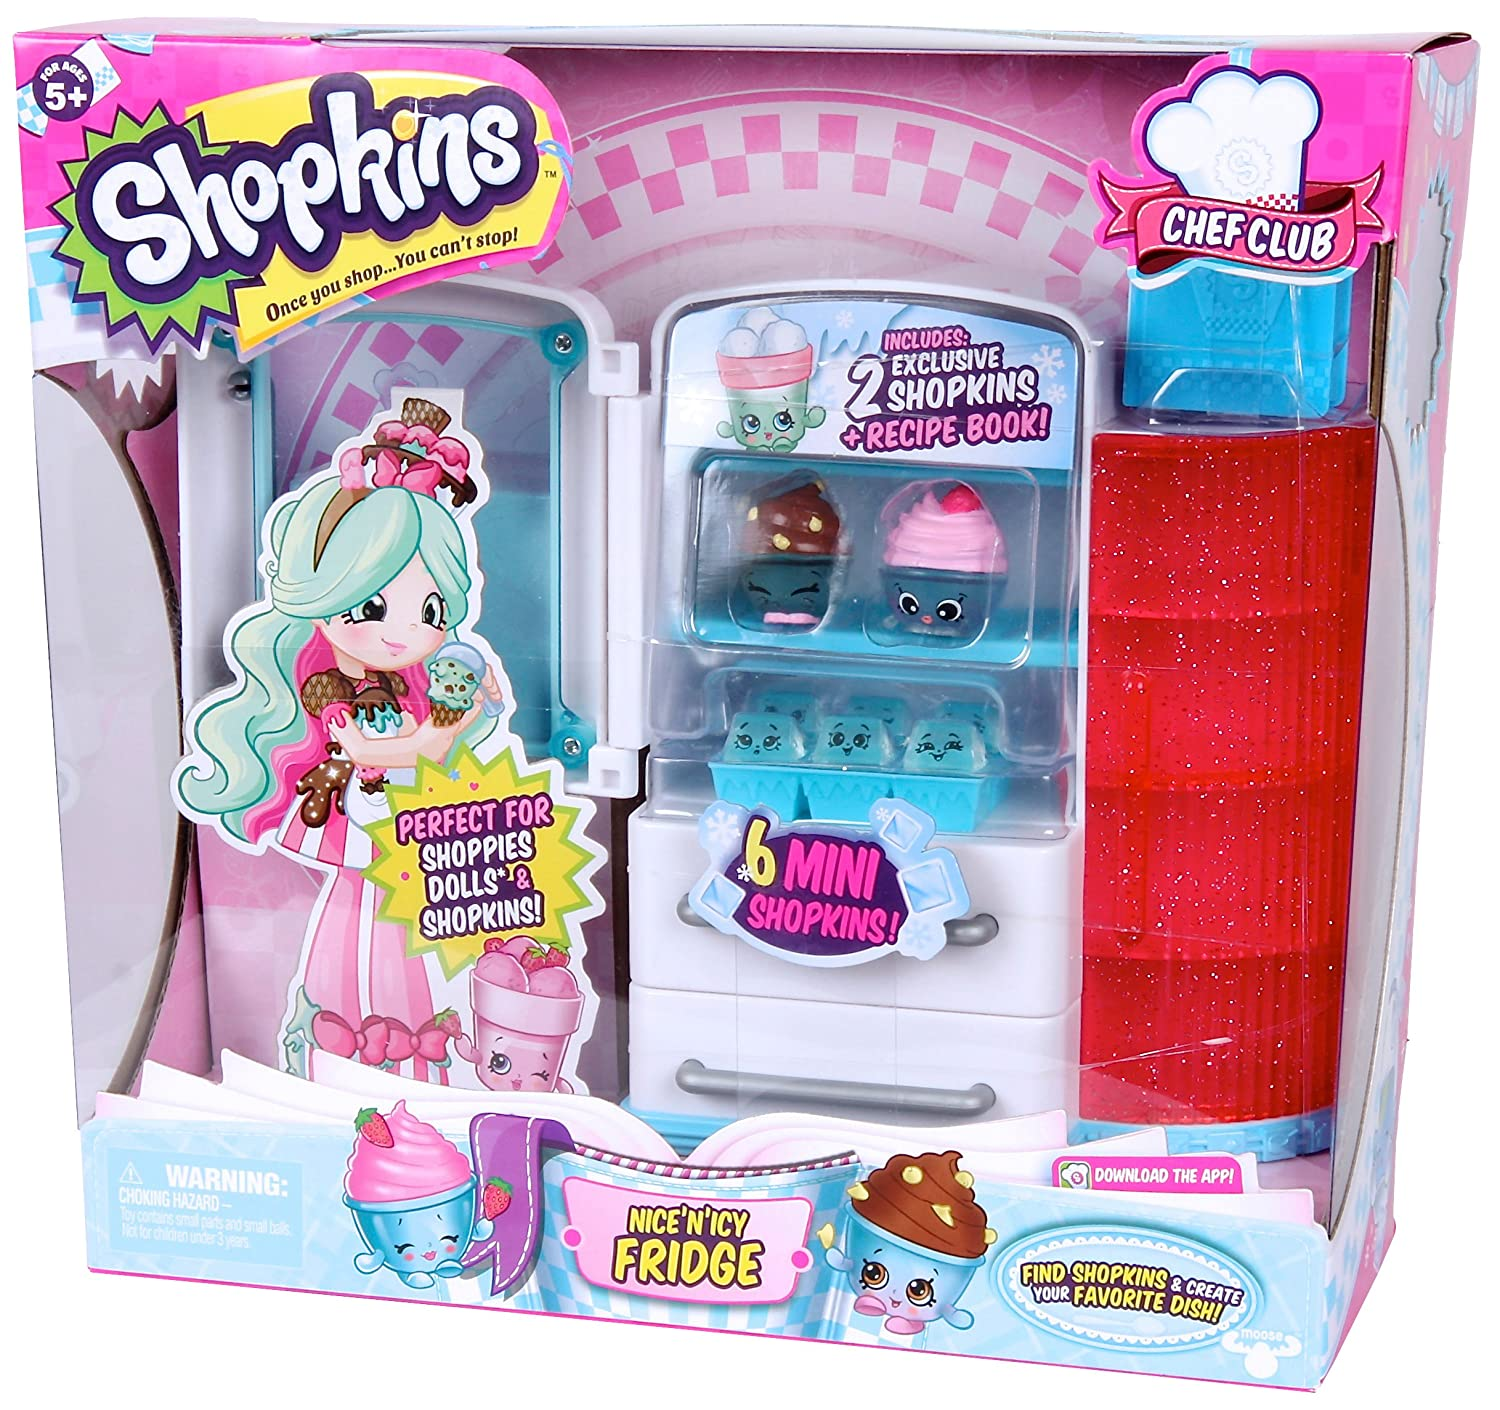 Amazon.com: Shopkins Chef Club Fridge: Toys & Games